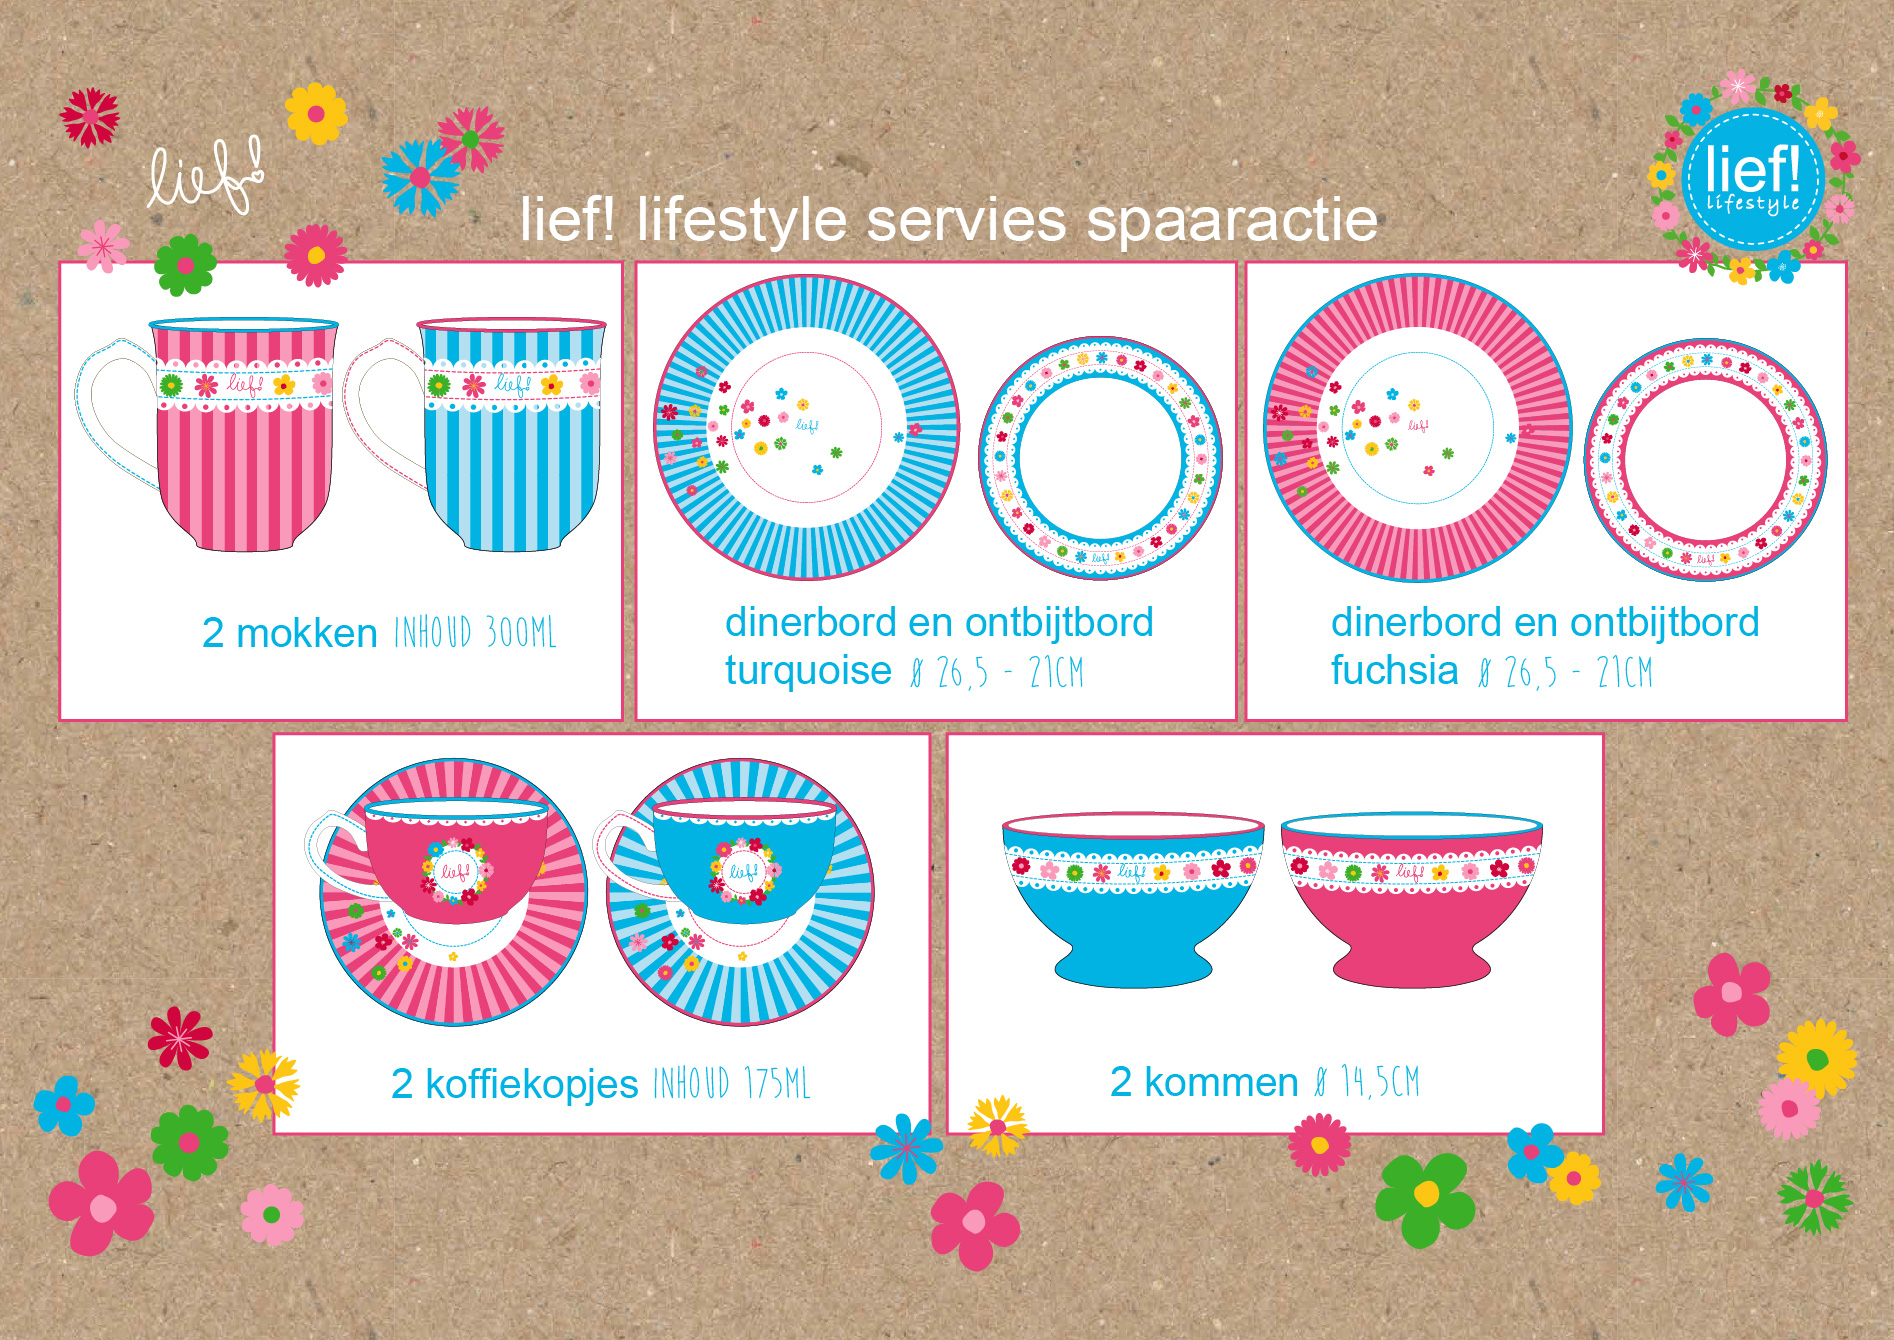 servies-overview-lief!-lifestyle